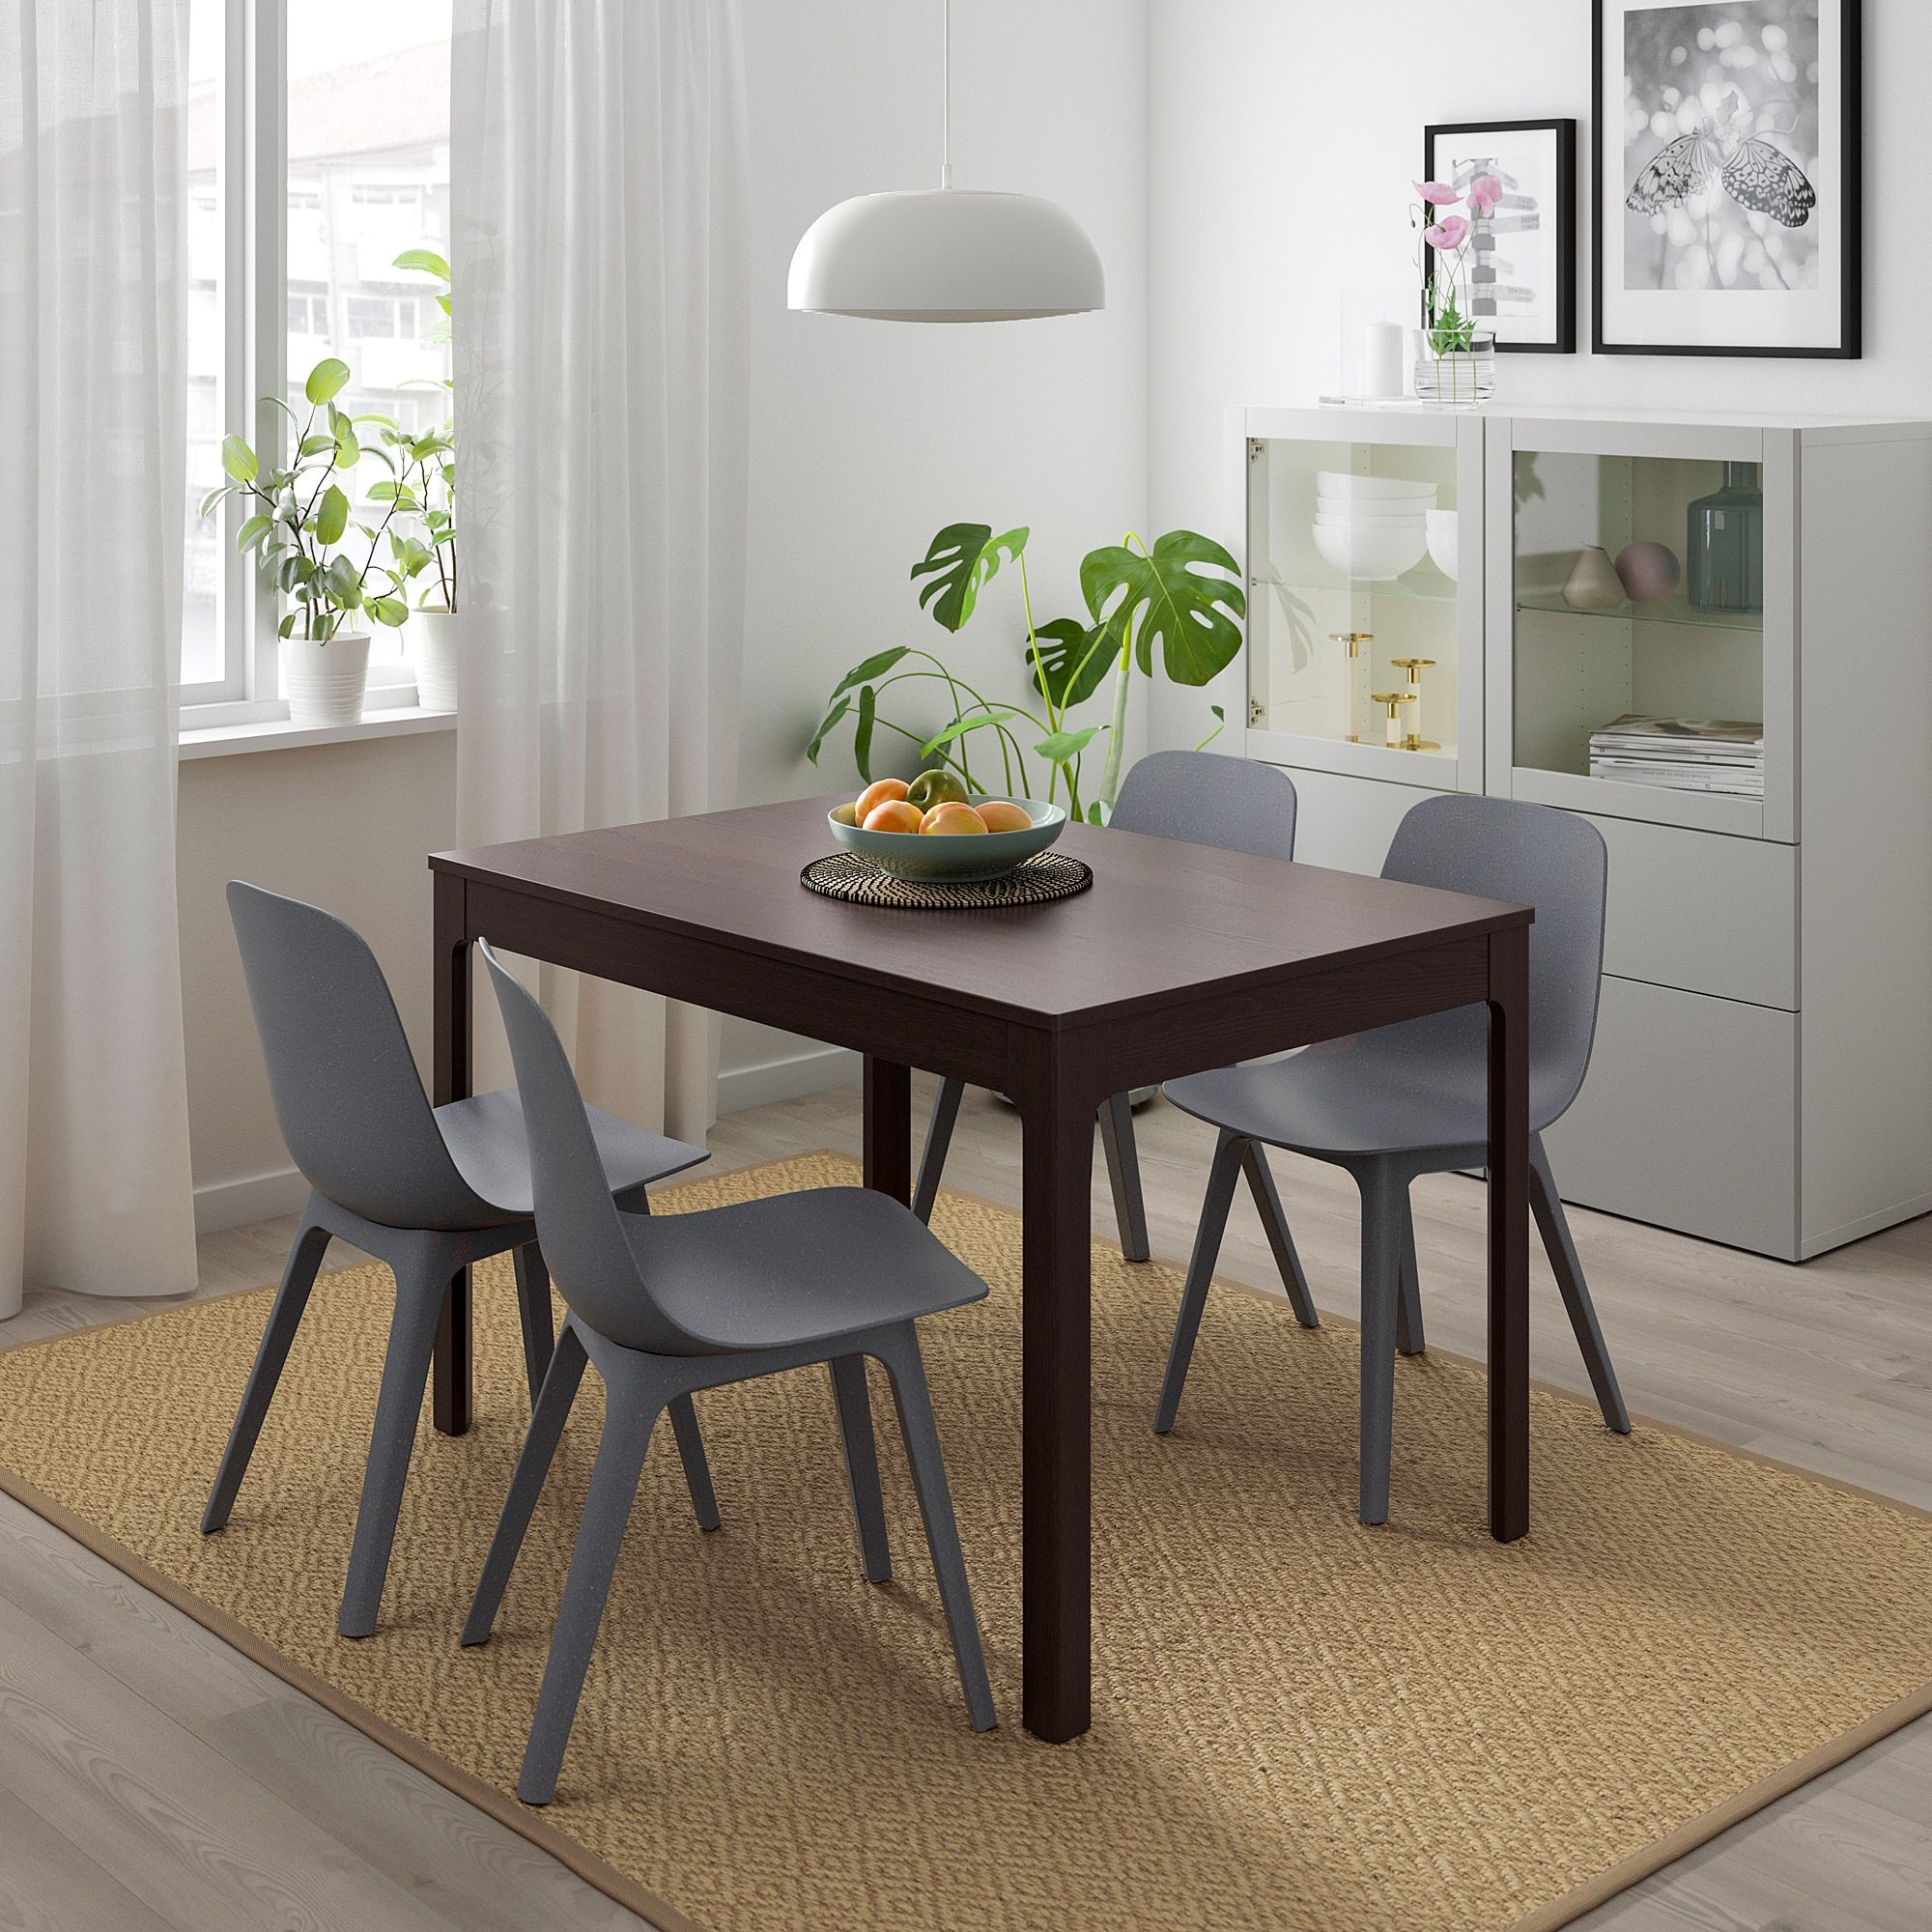 Ikea Ekedalen Odger Table And 4 Chairs Chair Table Ikea